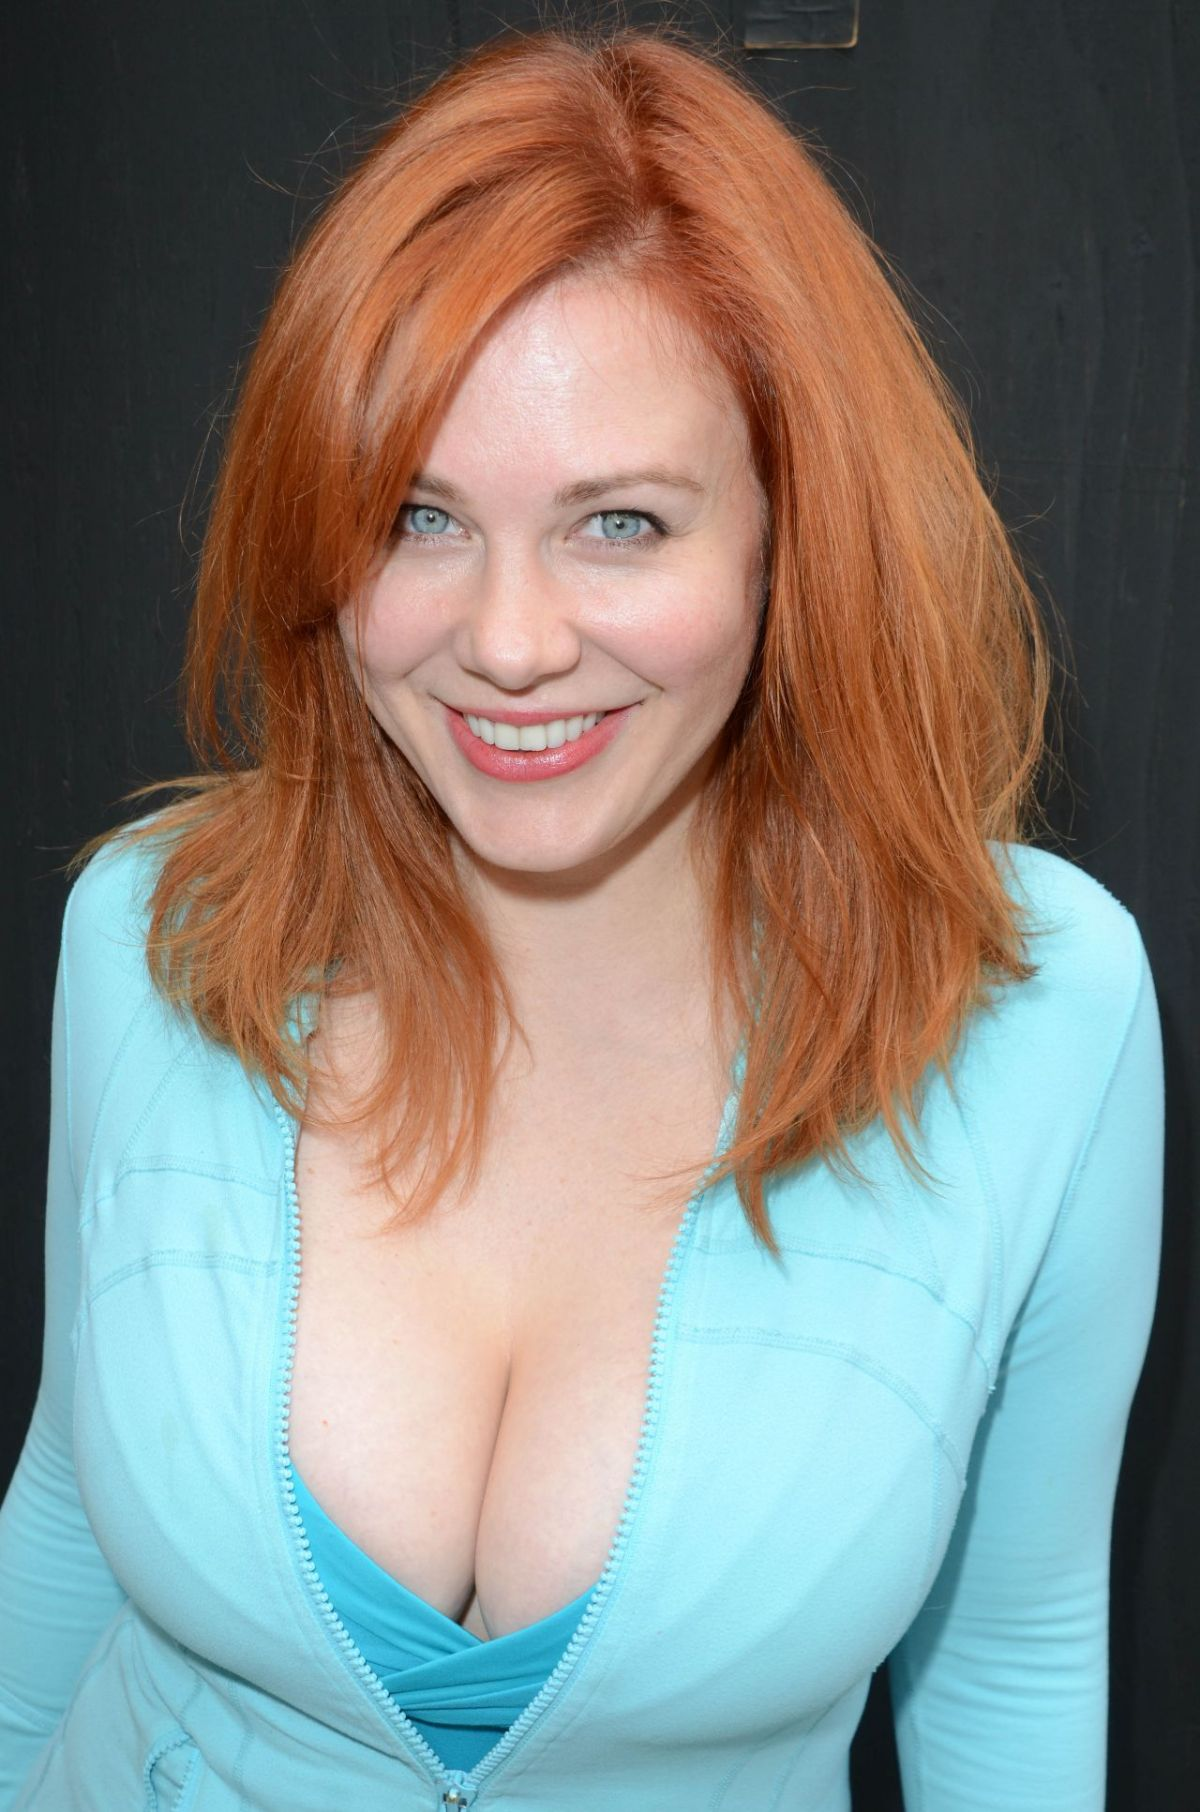 Photo of the beautiful sexy  Maitland Ward from Long Beach, California, United States without makeup